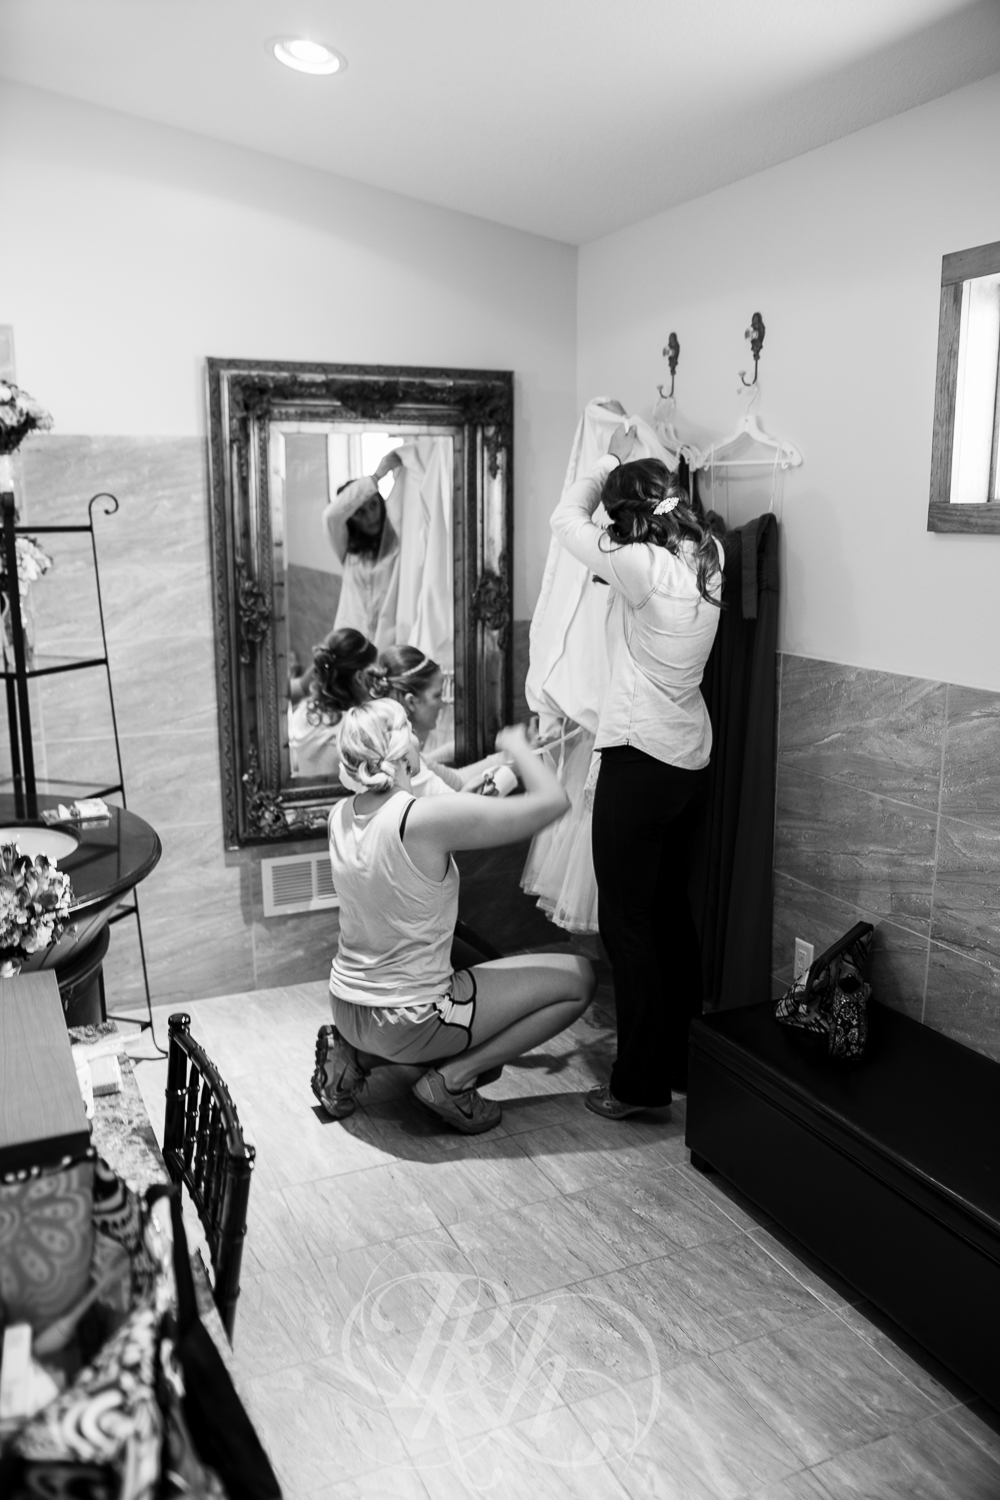 Katie & Garrett - Minnesota Wedding Photography - RKH Images - Blog -14.jpg